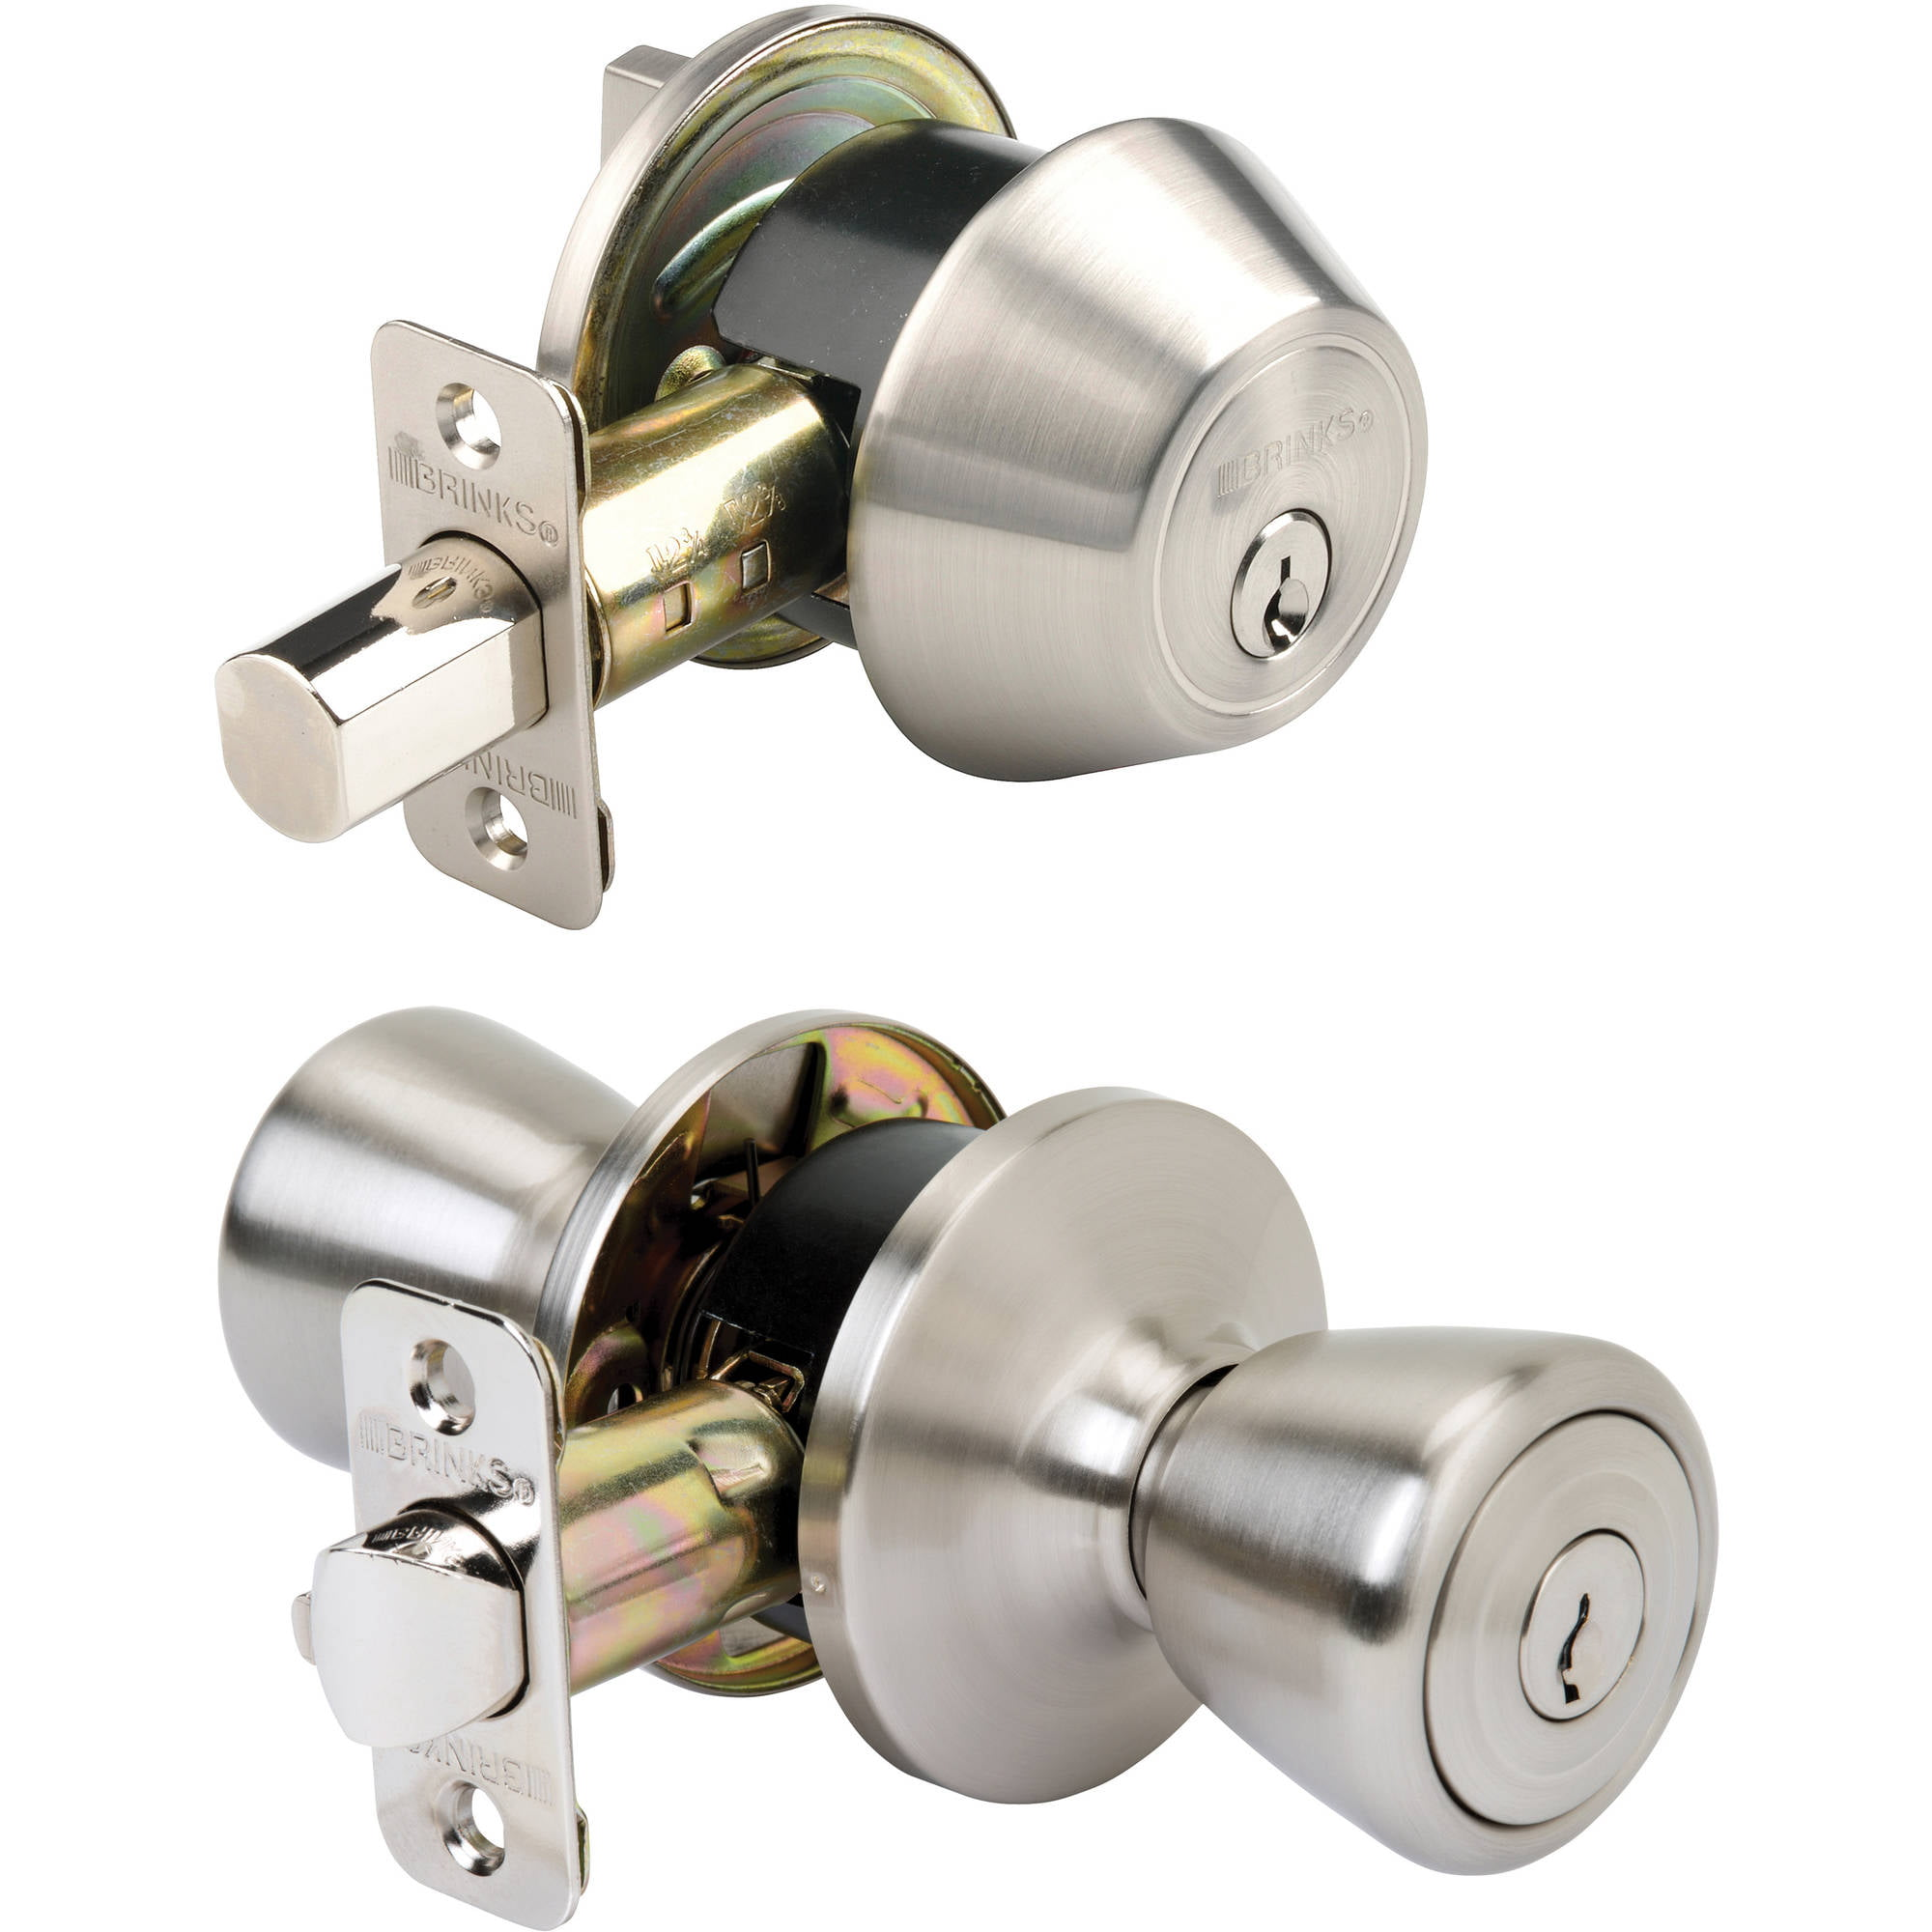 types of door knob locks. keyed door knobs types of knob locks k